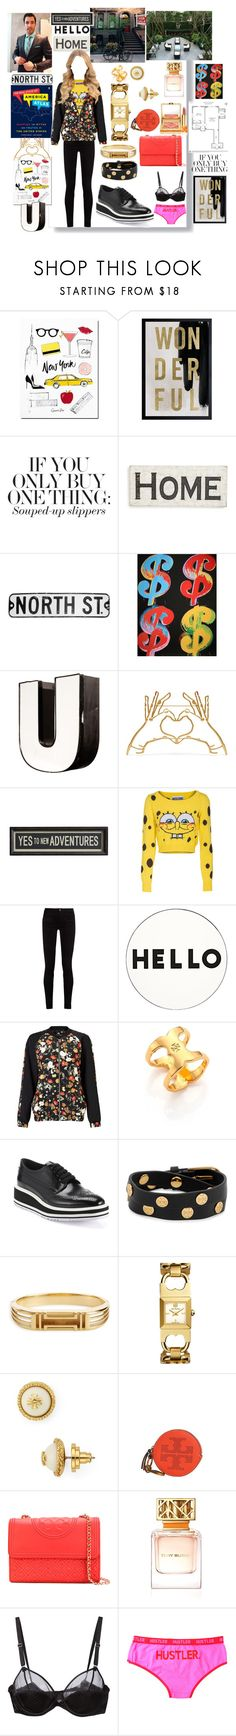 """Buying a brand new apartment-♥"" by aliceridler ❤ liked on Polyvore featuring Oliver Gal Artist Co., Primitives By Kathy, Andy Warhol, Mulberry, Pottery Barn, Moschino, Gucci, Lisa Perry, Miss Selfridge and Tory Burch"